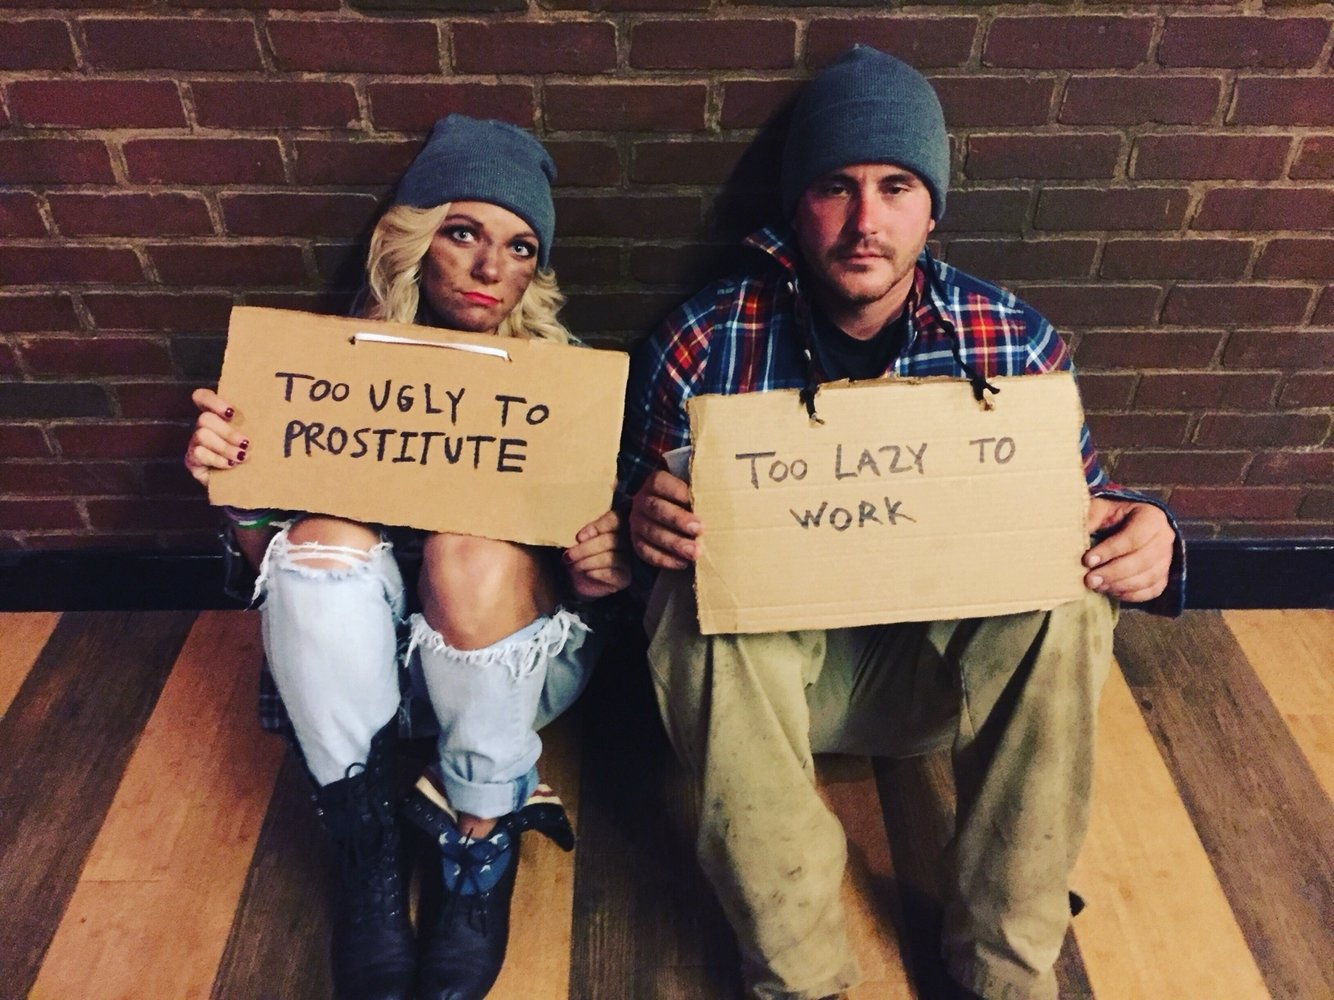 10 Pretty Cheap Funny Halloween Costumes Ideas funny couples costumes holidays pinterest funny couple 4 2020